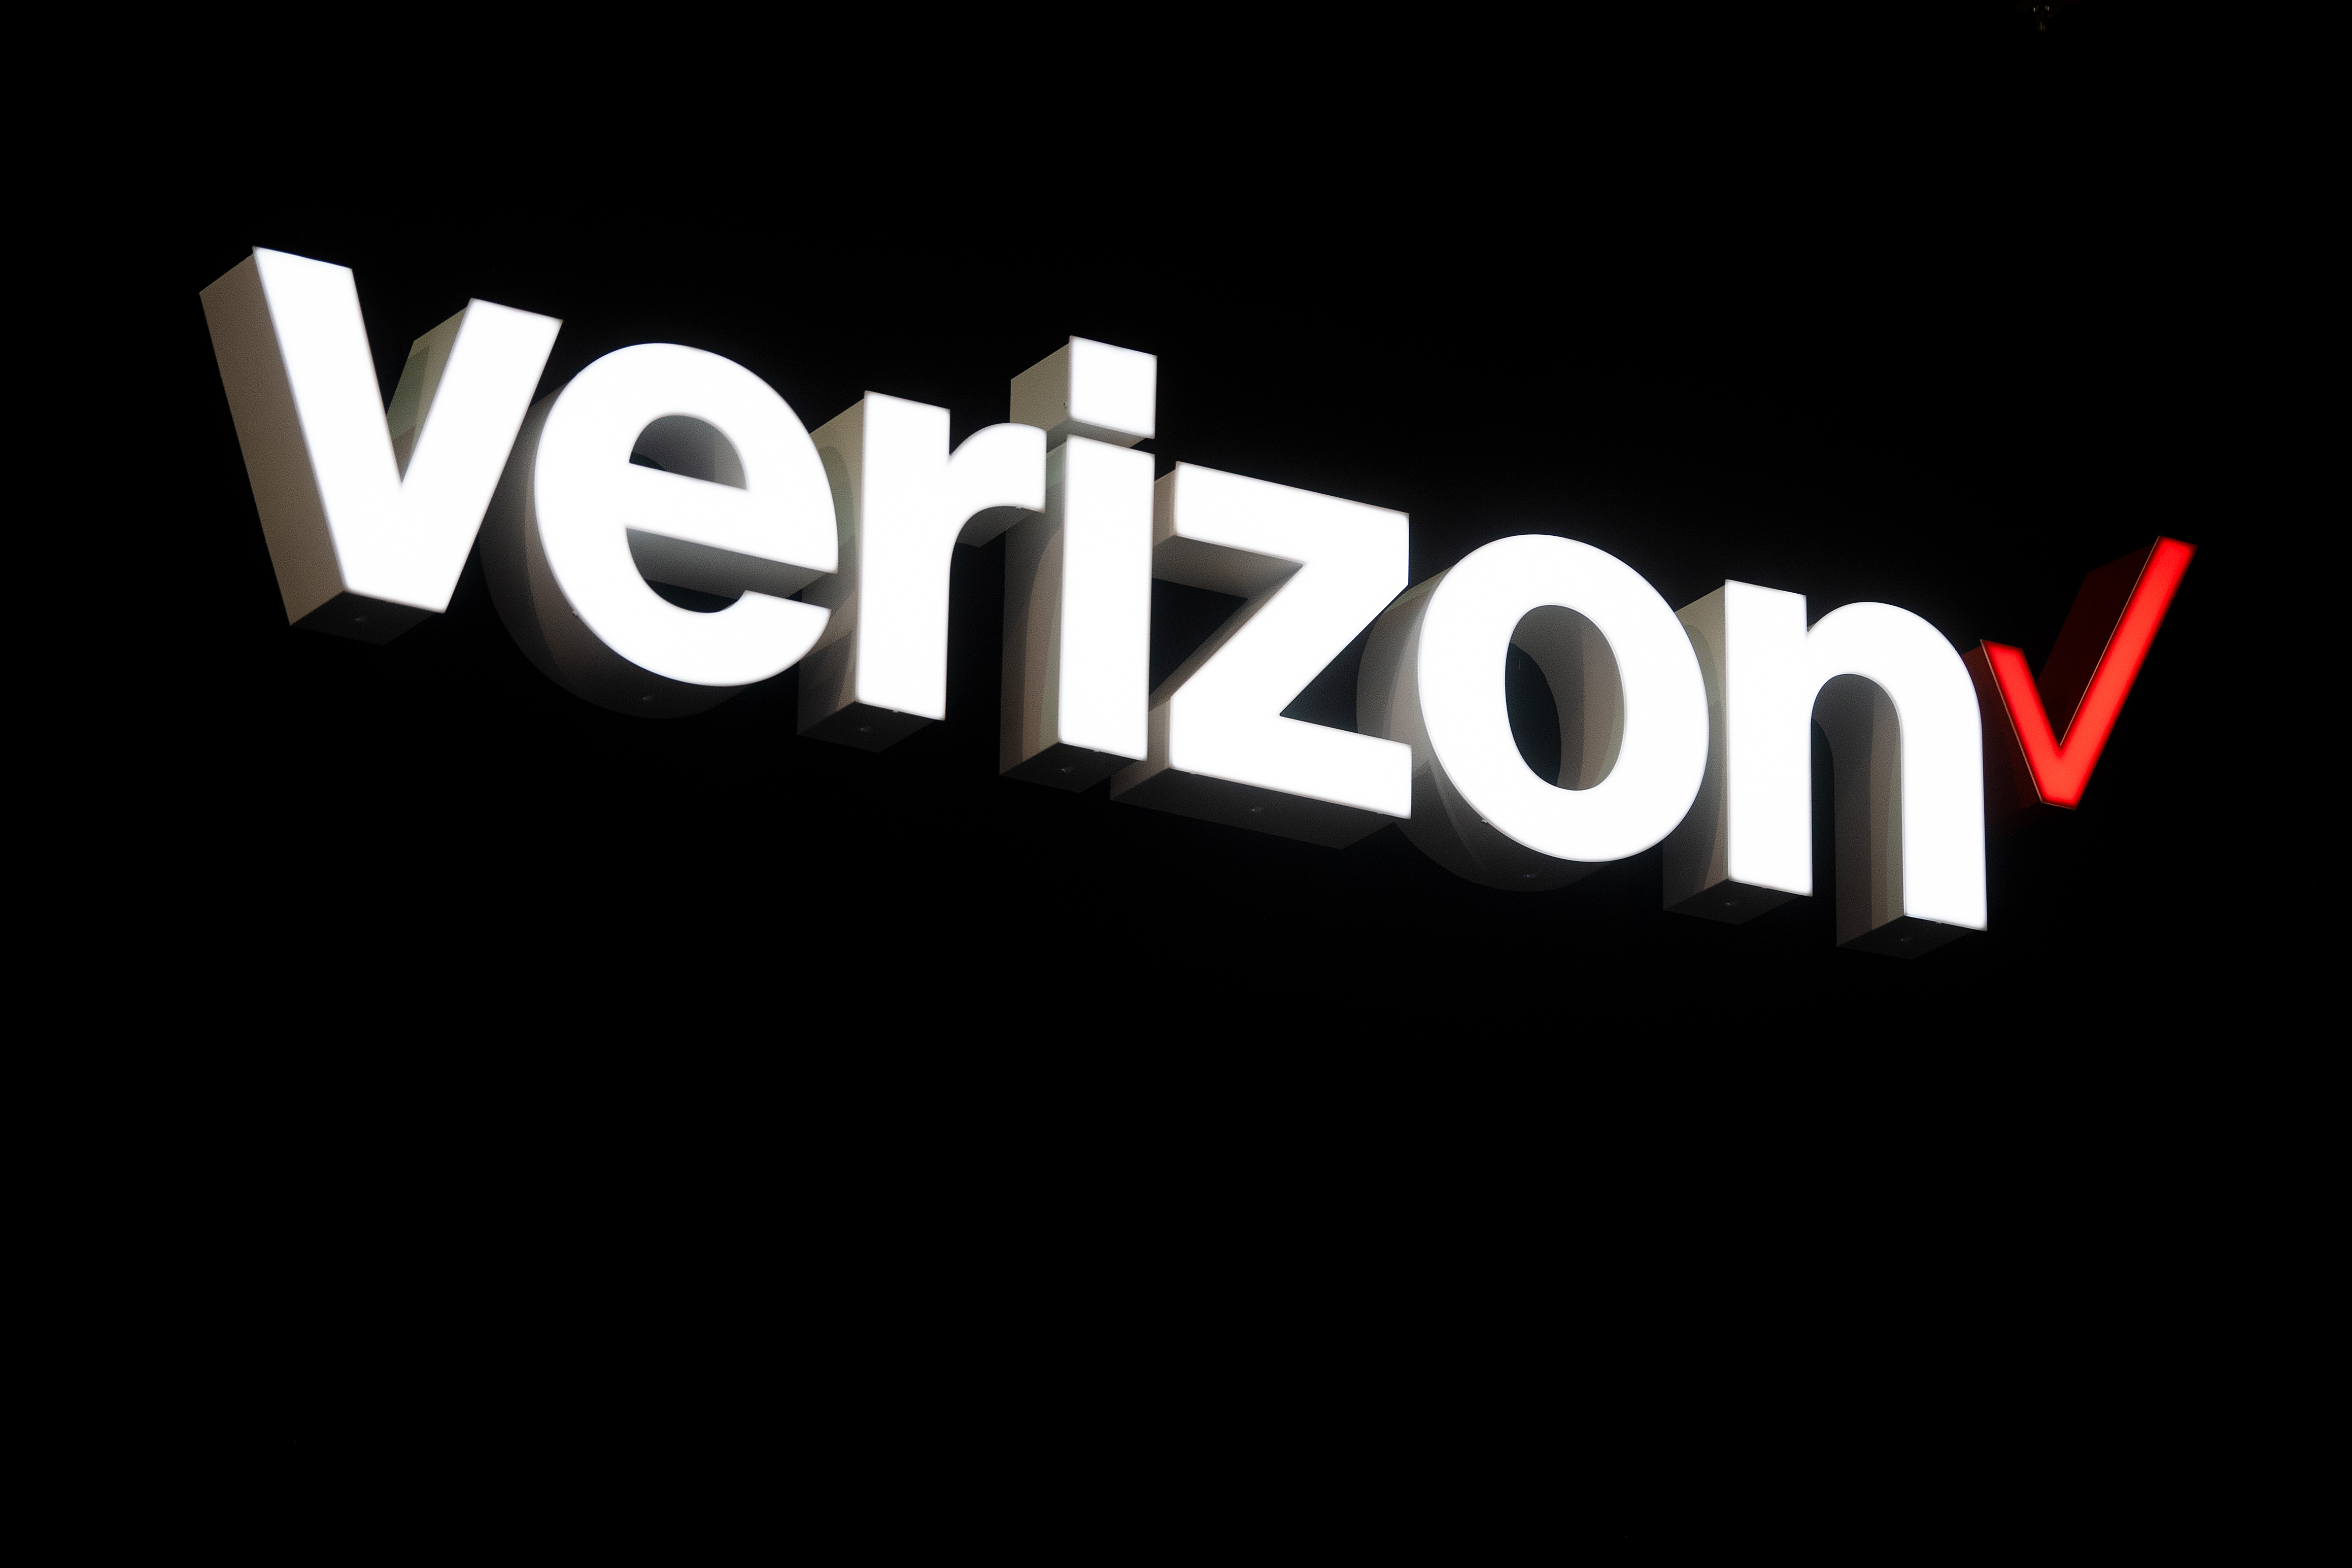 Verizon says a texting outage on the East Coast has been